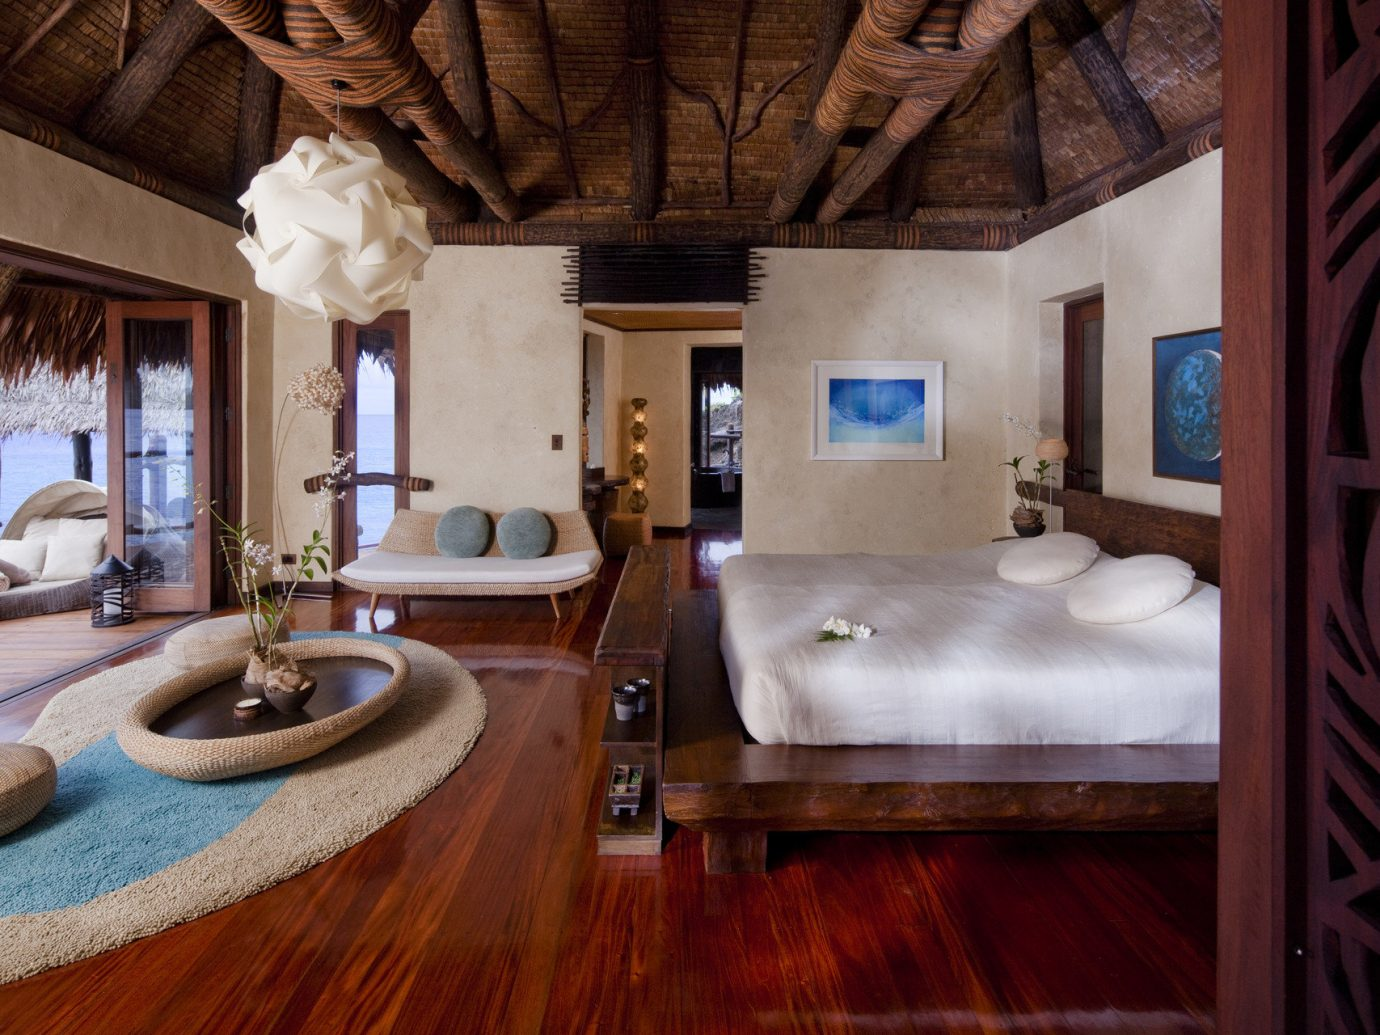 All-Inclusive Resorts Beach bed Bedroom Hotels hut isolation Luxury Luxury Travel open-air private quaint remote serene Tropical indoor room property estate house home cottage floor living room interior design farmhouse mansion Villa real estate Suite wood stone